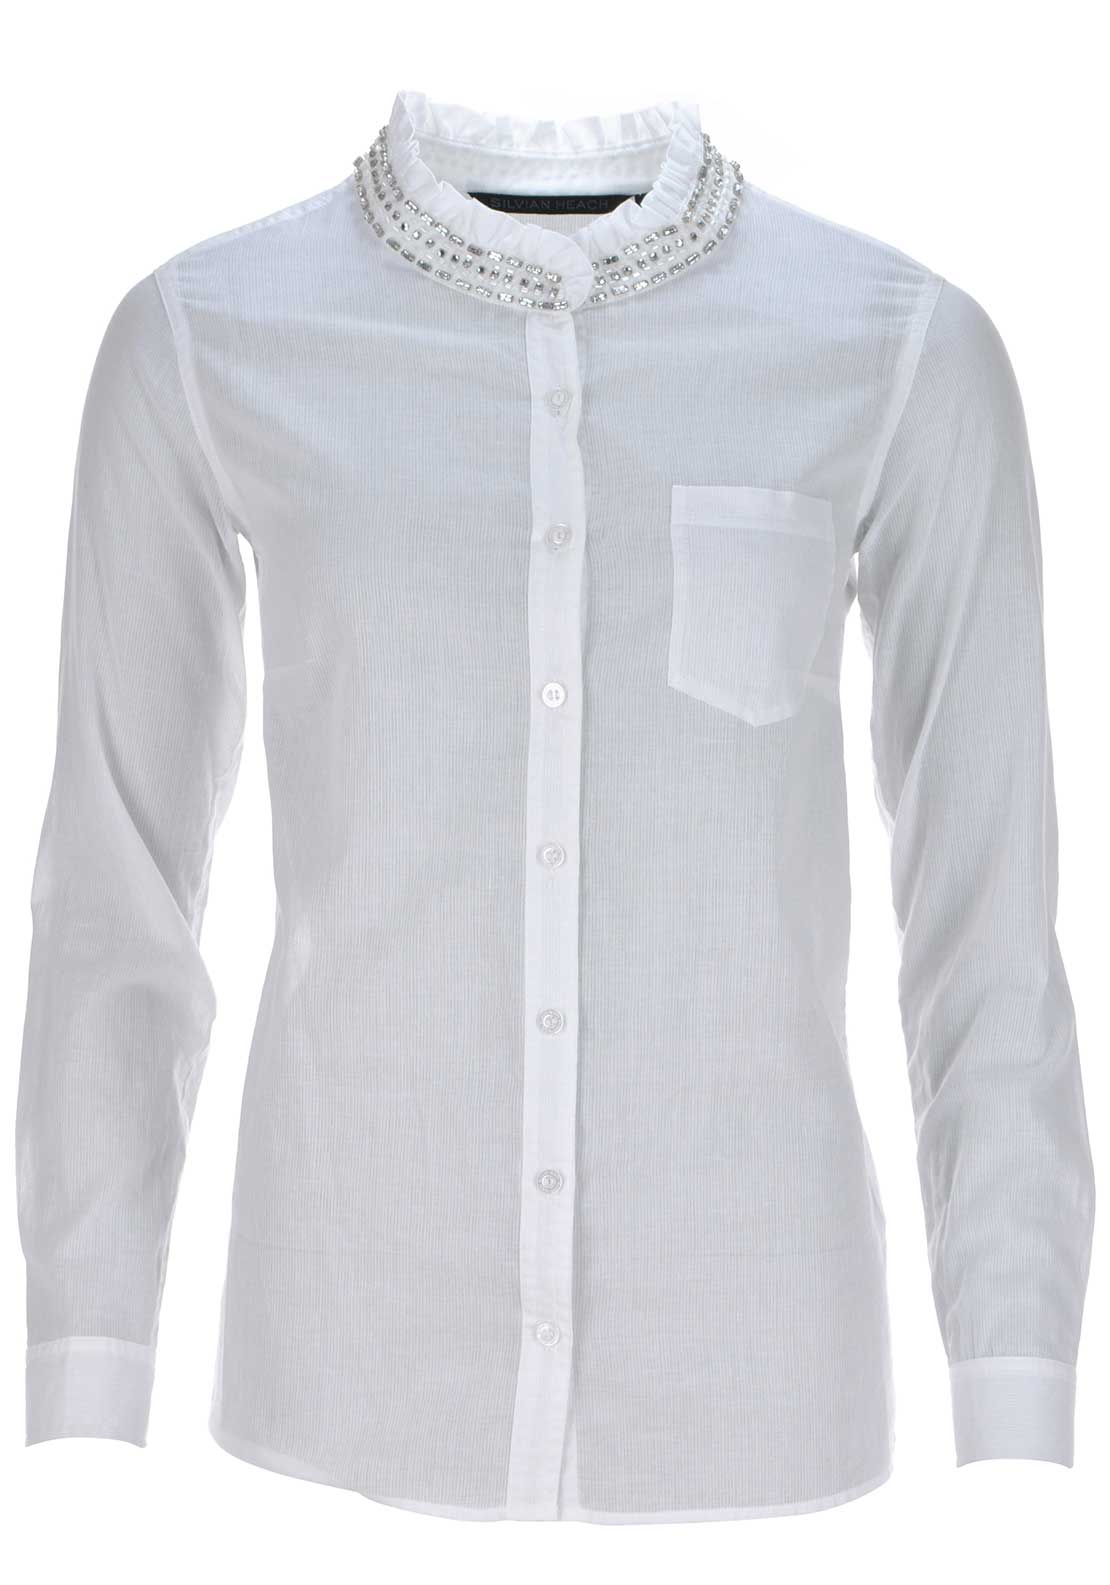 Silvian Heach Semi Sheer Diamante Embellished Shirt, White